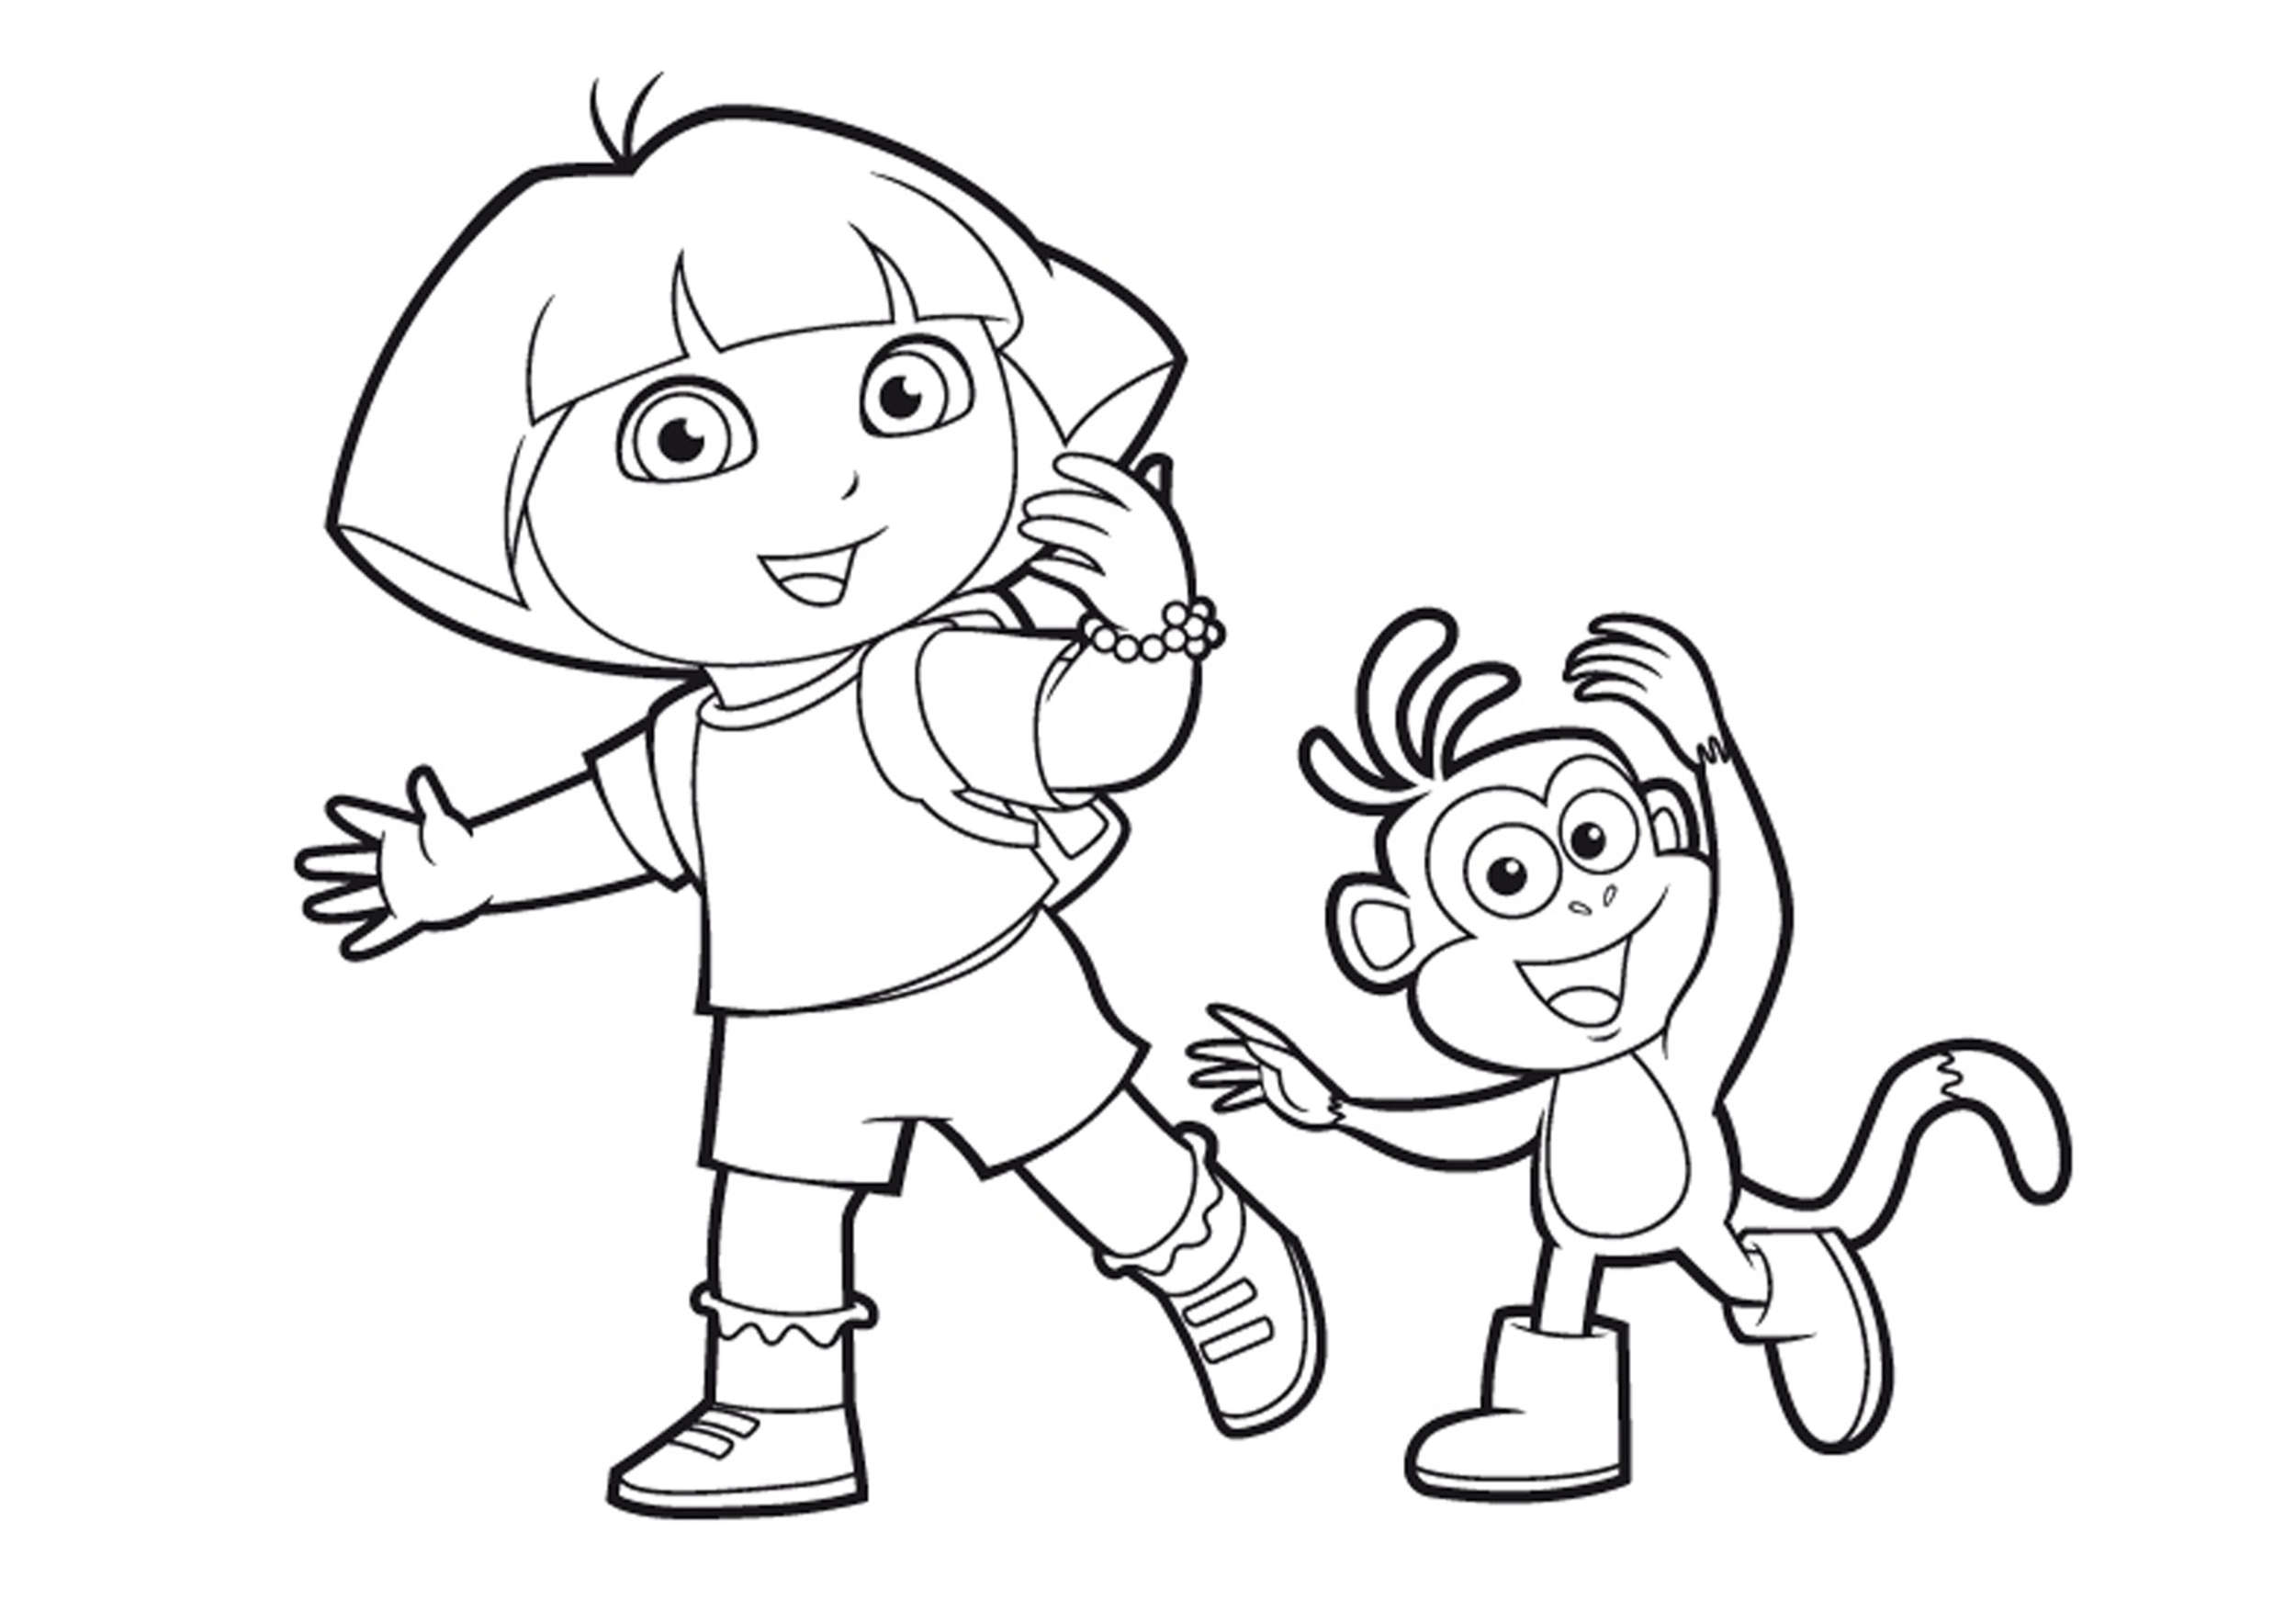 Coloriages dora imprimer backupyourbrain - Imprimer coloriages ...